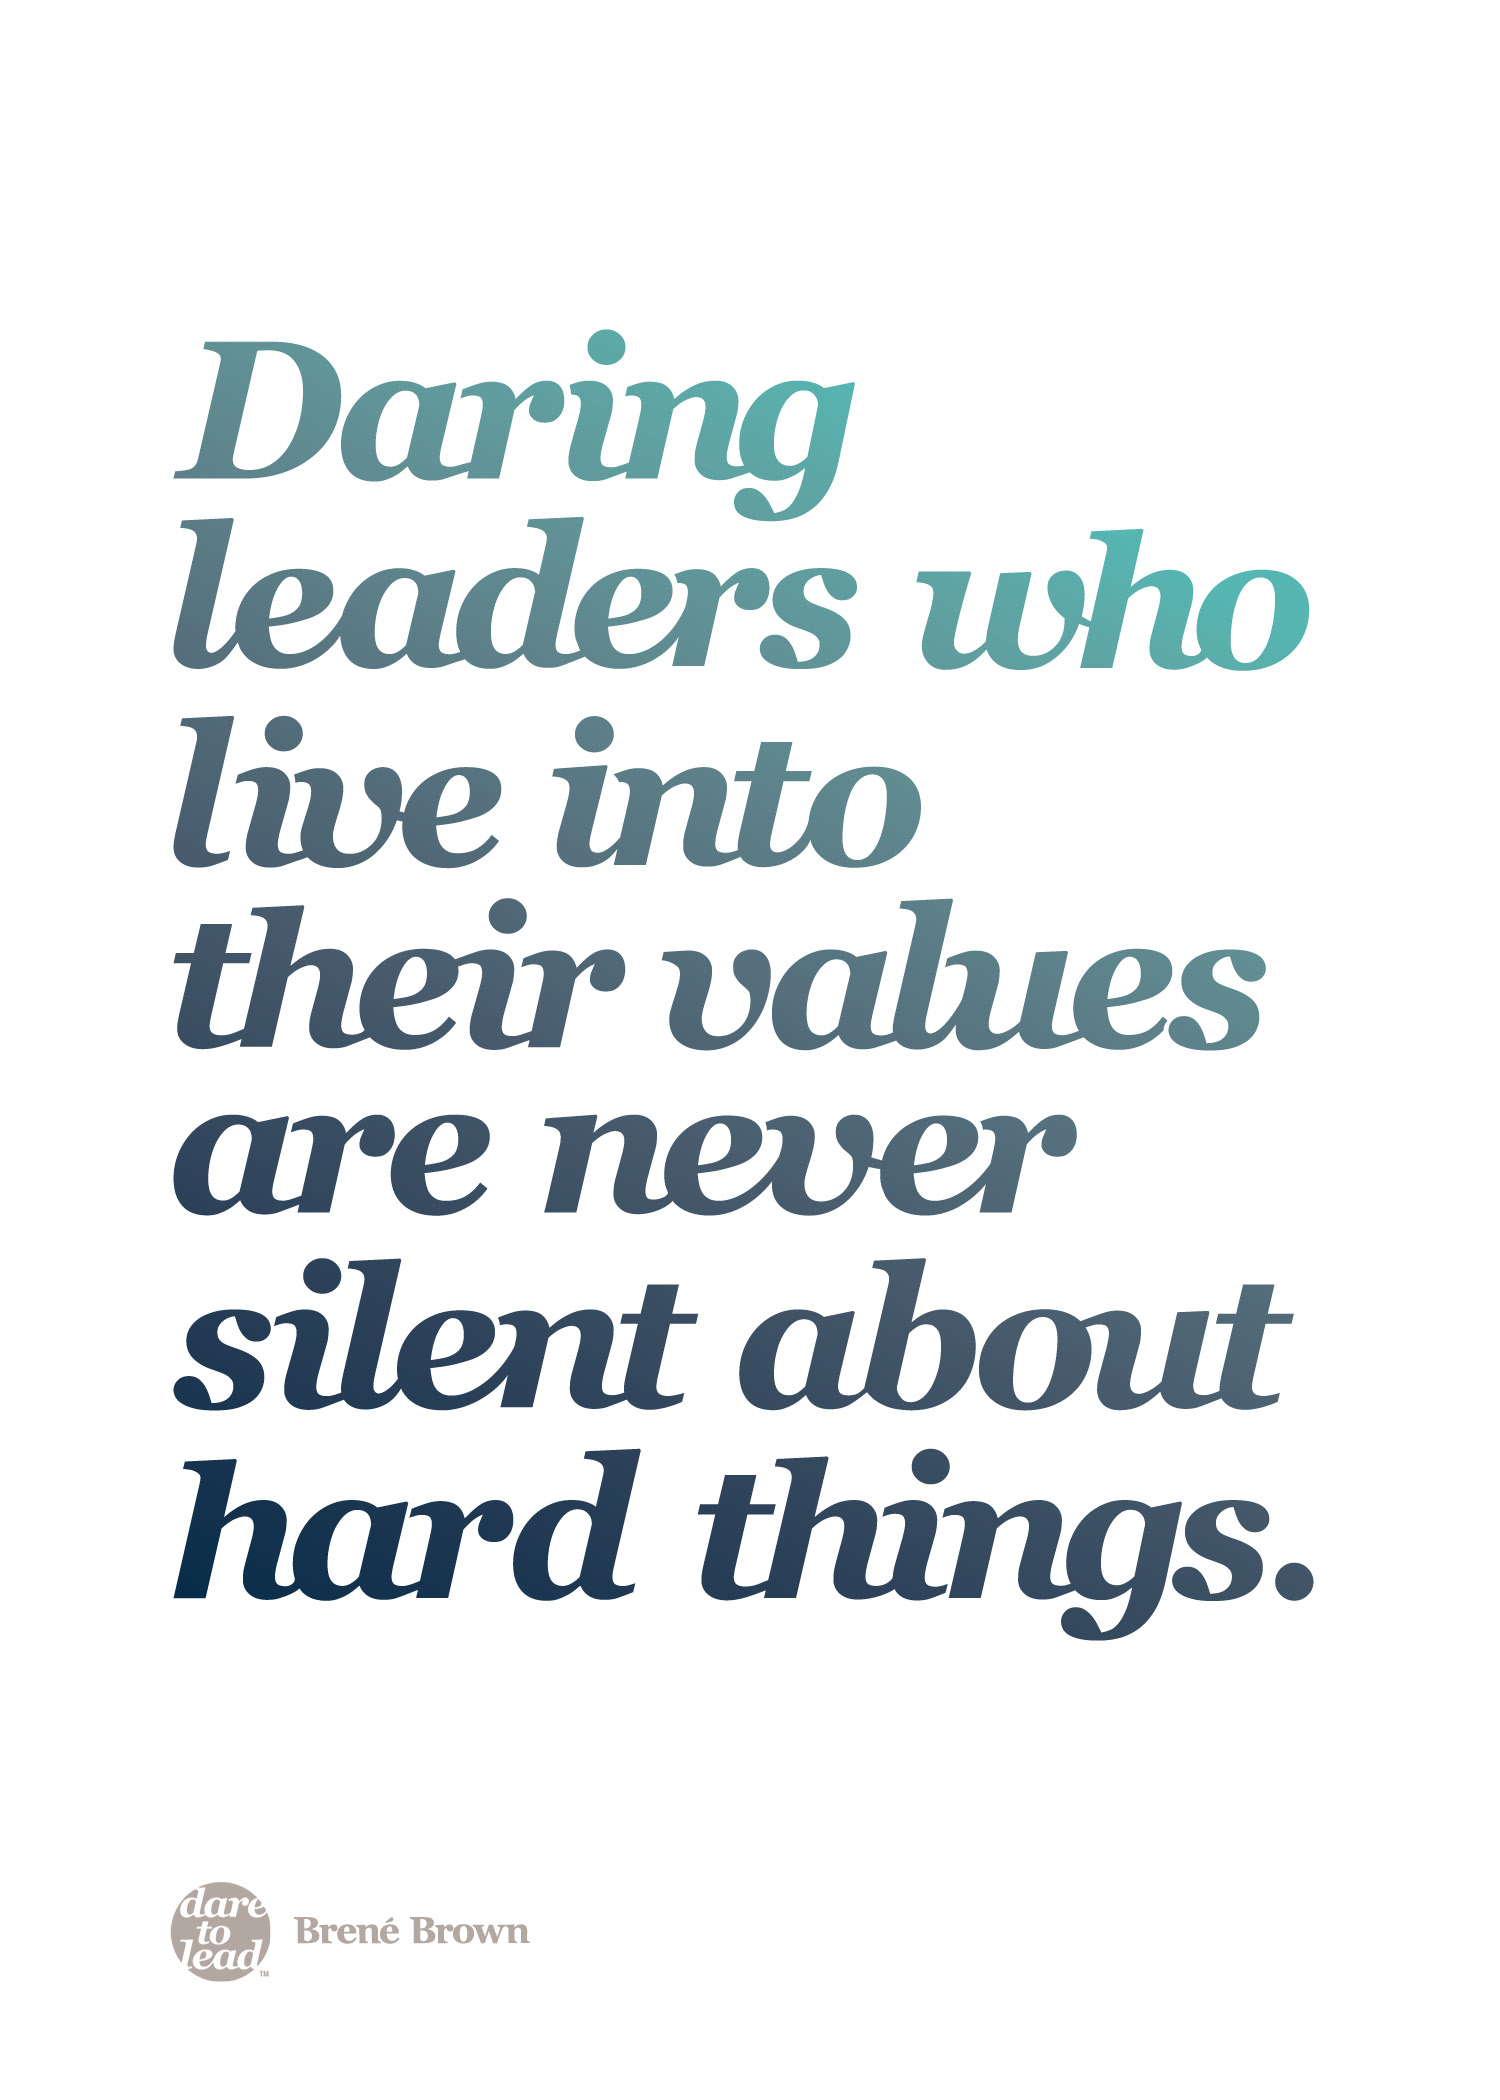 """A quote from Brené Brown reading """"Daring leaders who live into their values are never silent about hard things"""""""